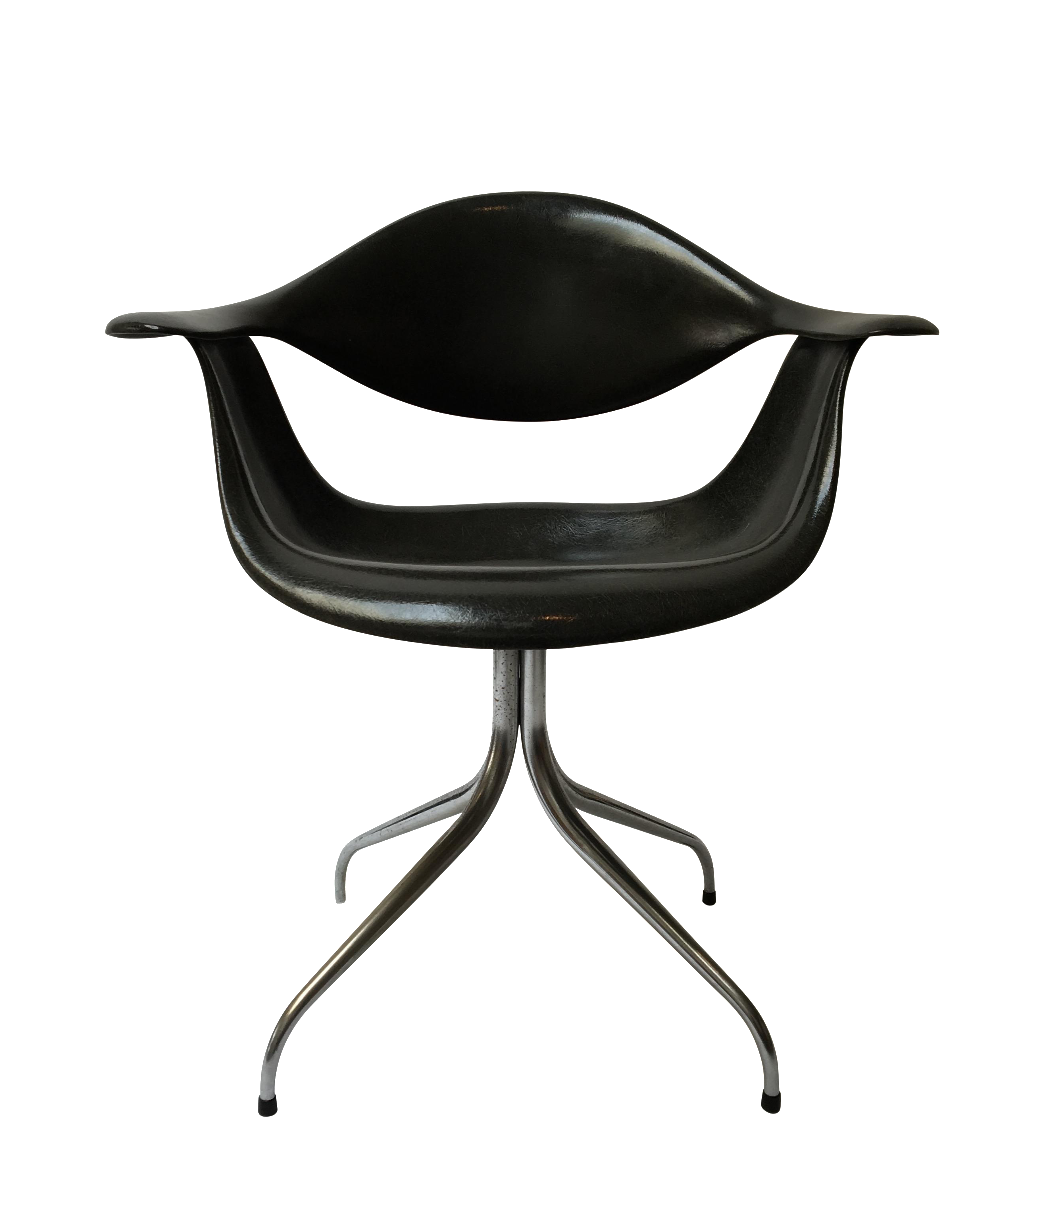 George Nelson Daf Swag Leg Chair For Herman Miller George Nelson Furniture George Nelson Chair